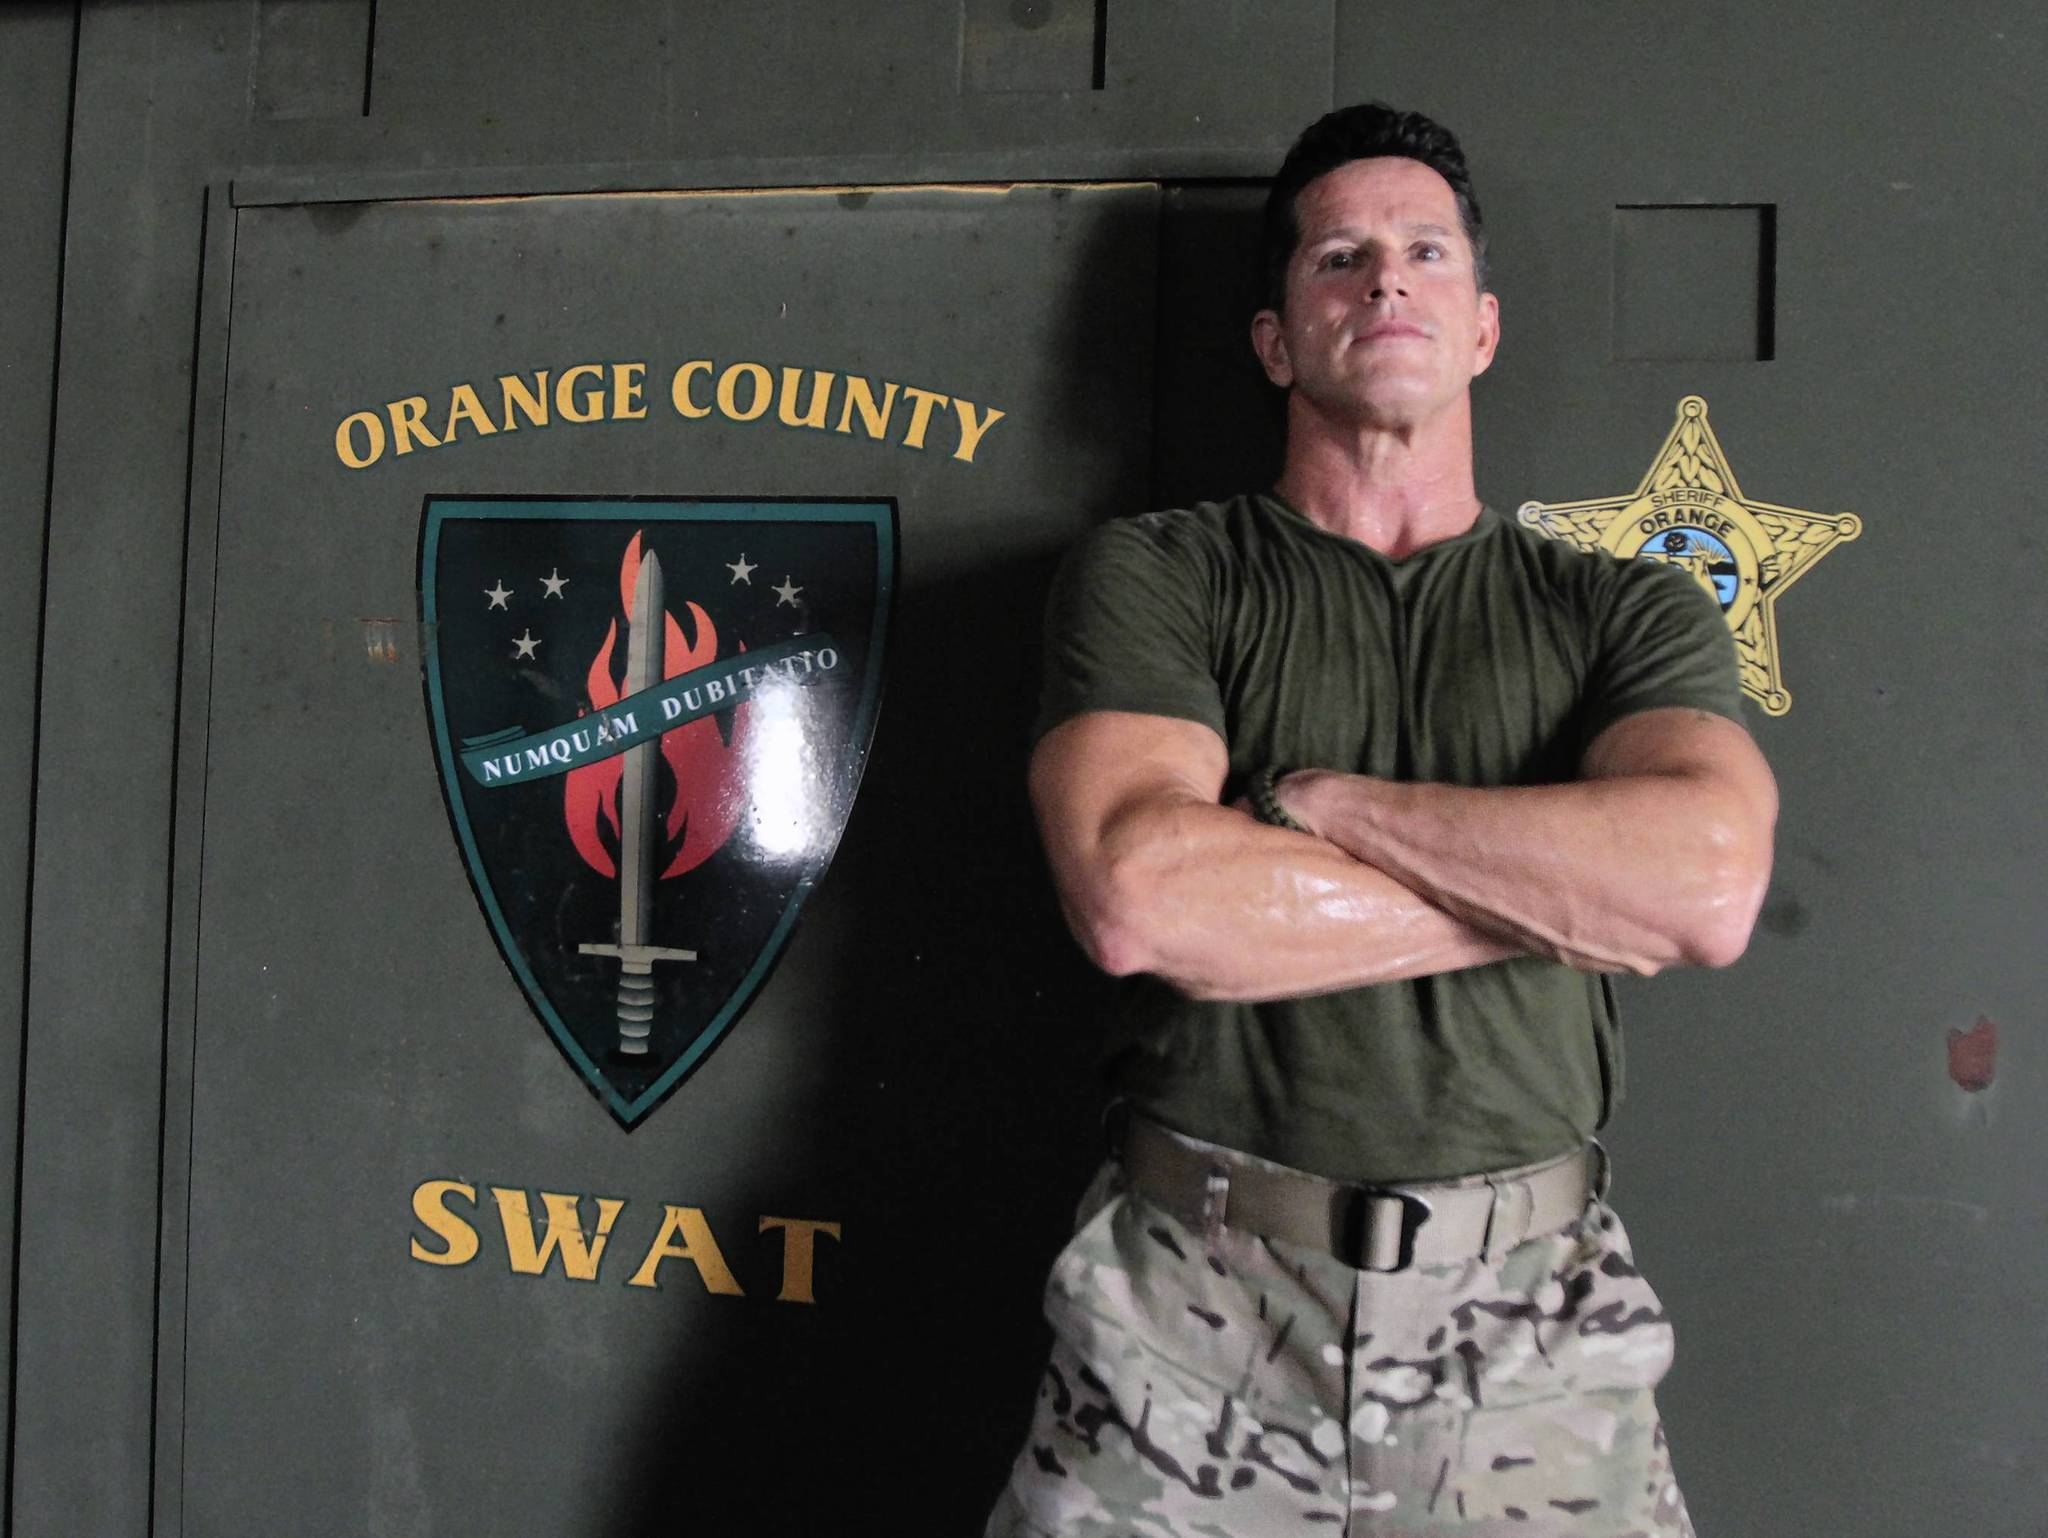 SWAT commander Tom Stroup of the Orange County Sheriff's Office is making another foray into reality TV.